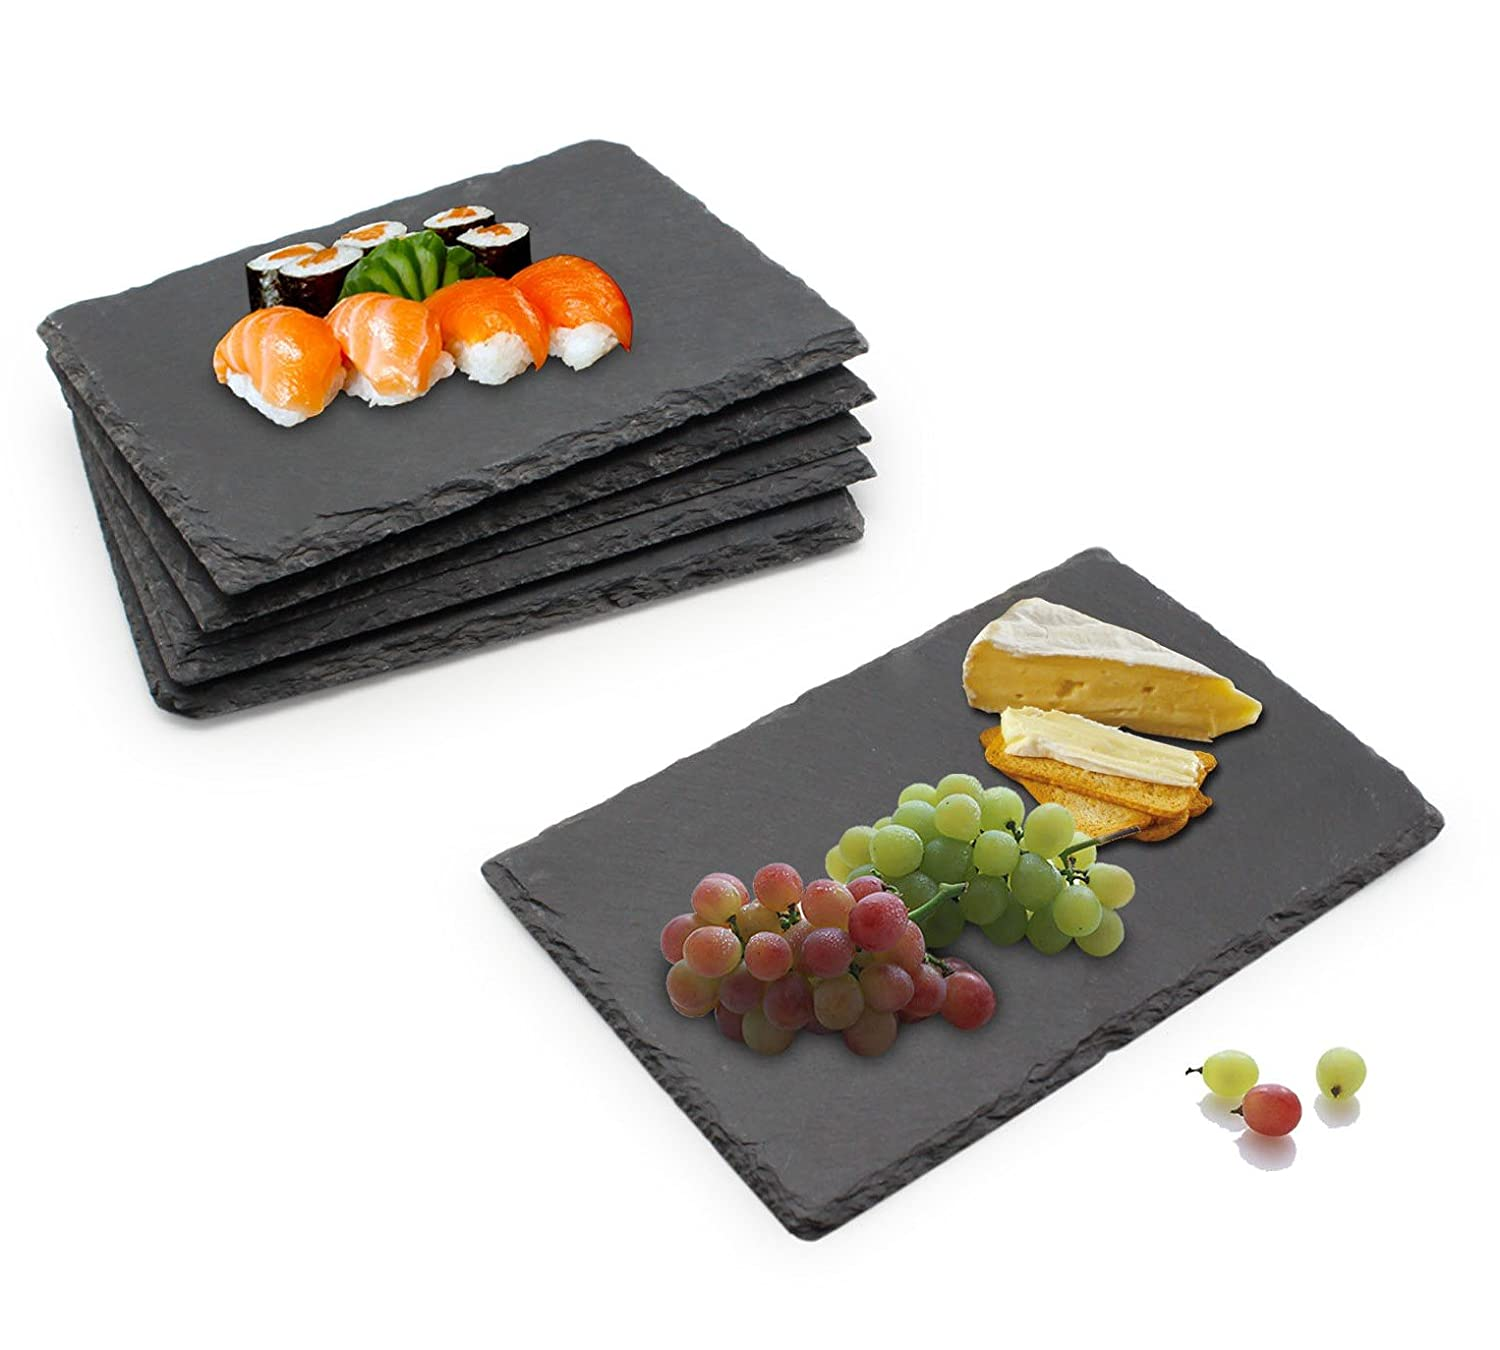 Megashef 6 Piece Set of Slate Food/Salad/Cheese Boards Plate for Dinner Parties and Entertaining Family Gift Idea Present Amazon.co.uk Kitchen \u0026 Home  sc 1 st  Amazon UK & Megashef 6 Piece Set of Slate Food/Salad/Cheese Boards Plate for ...